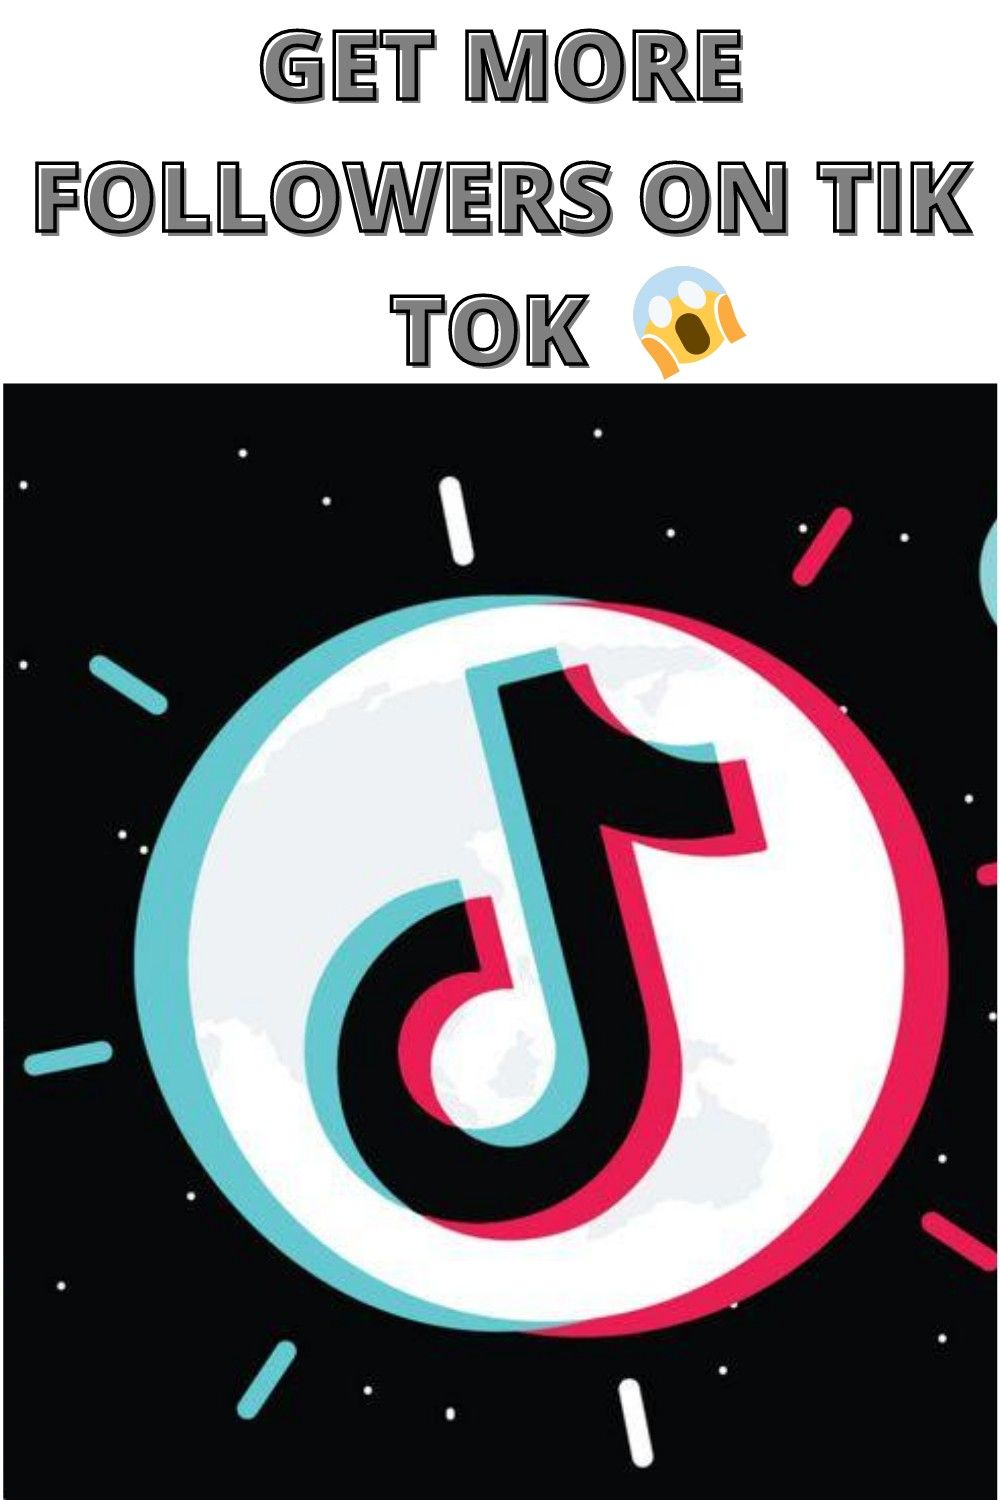 Tik tok followers hack 2020 in 2020 Tik tok, Tok, Generation